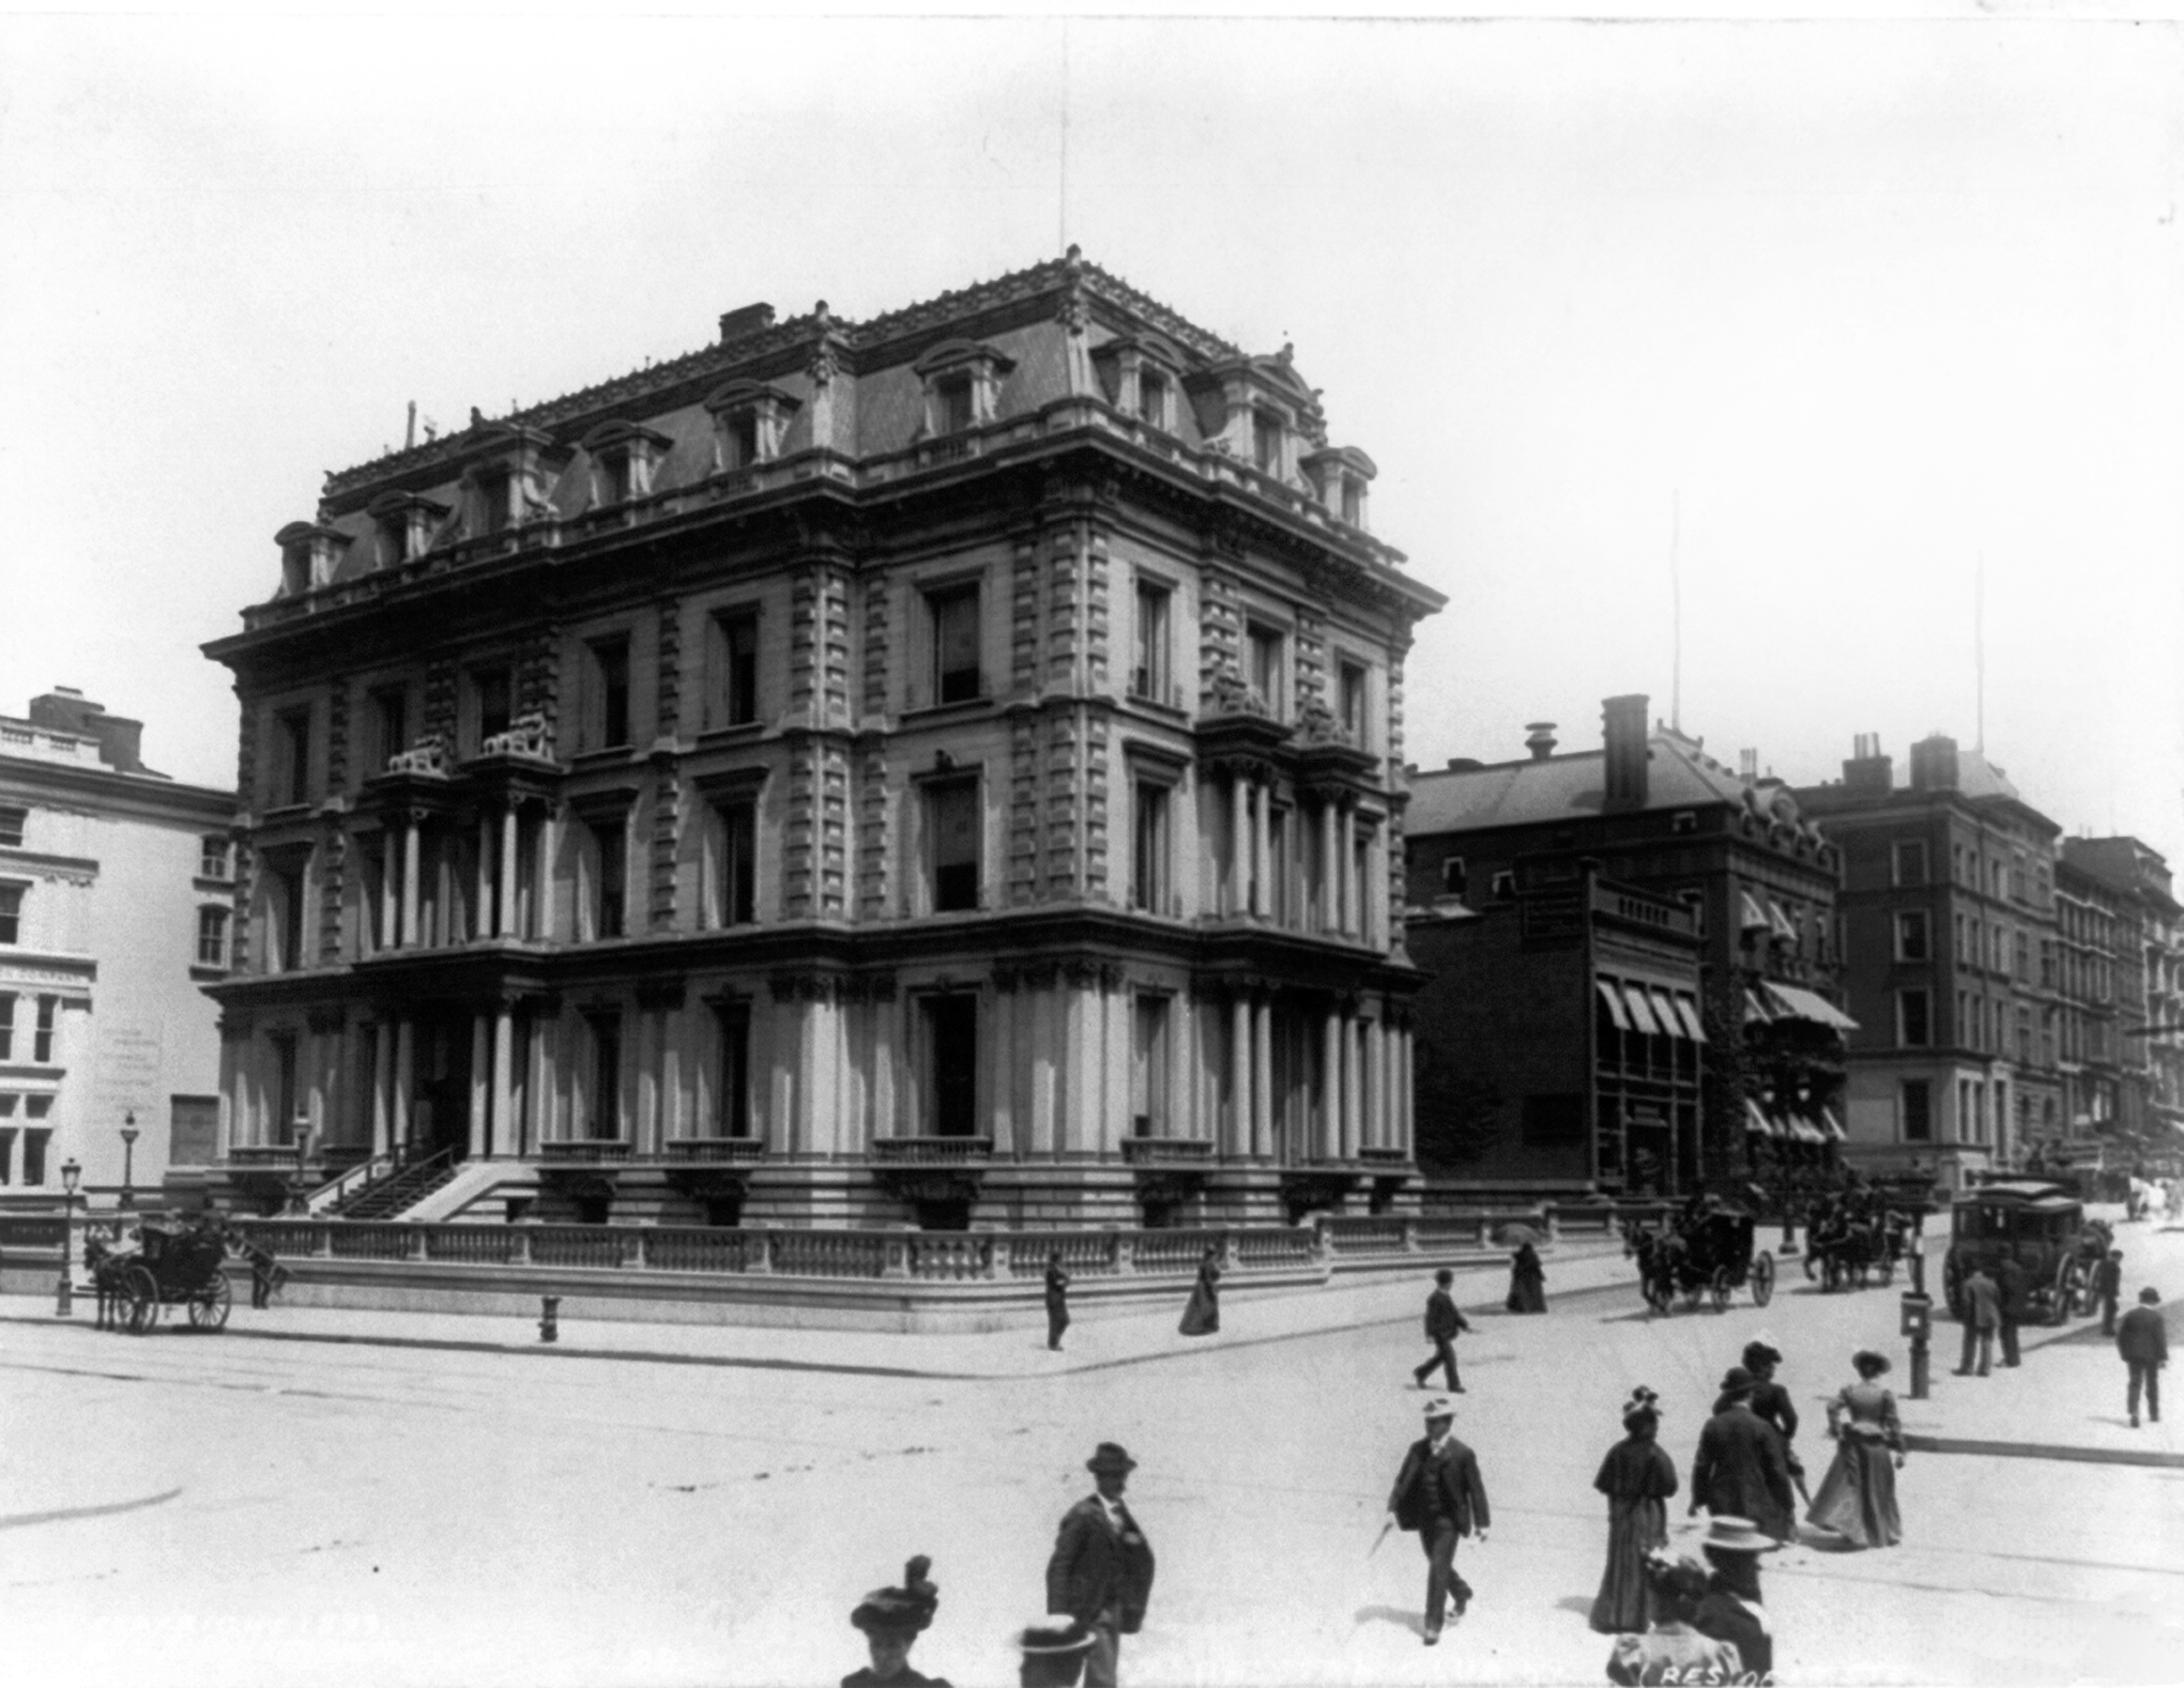 File:A.T. Stewart Mansion 34th st. 5th Ave, New York 1890 ...